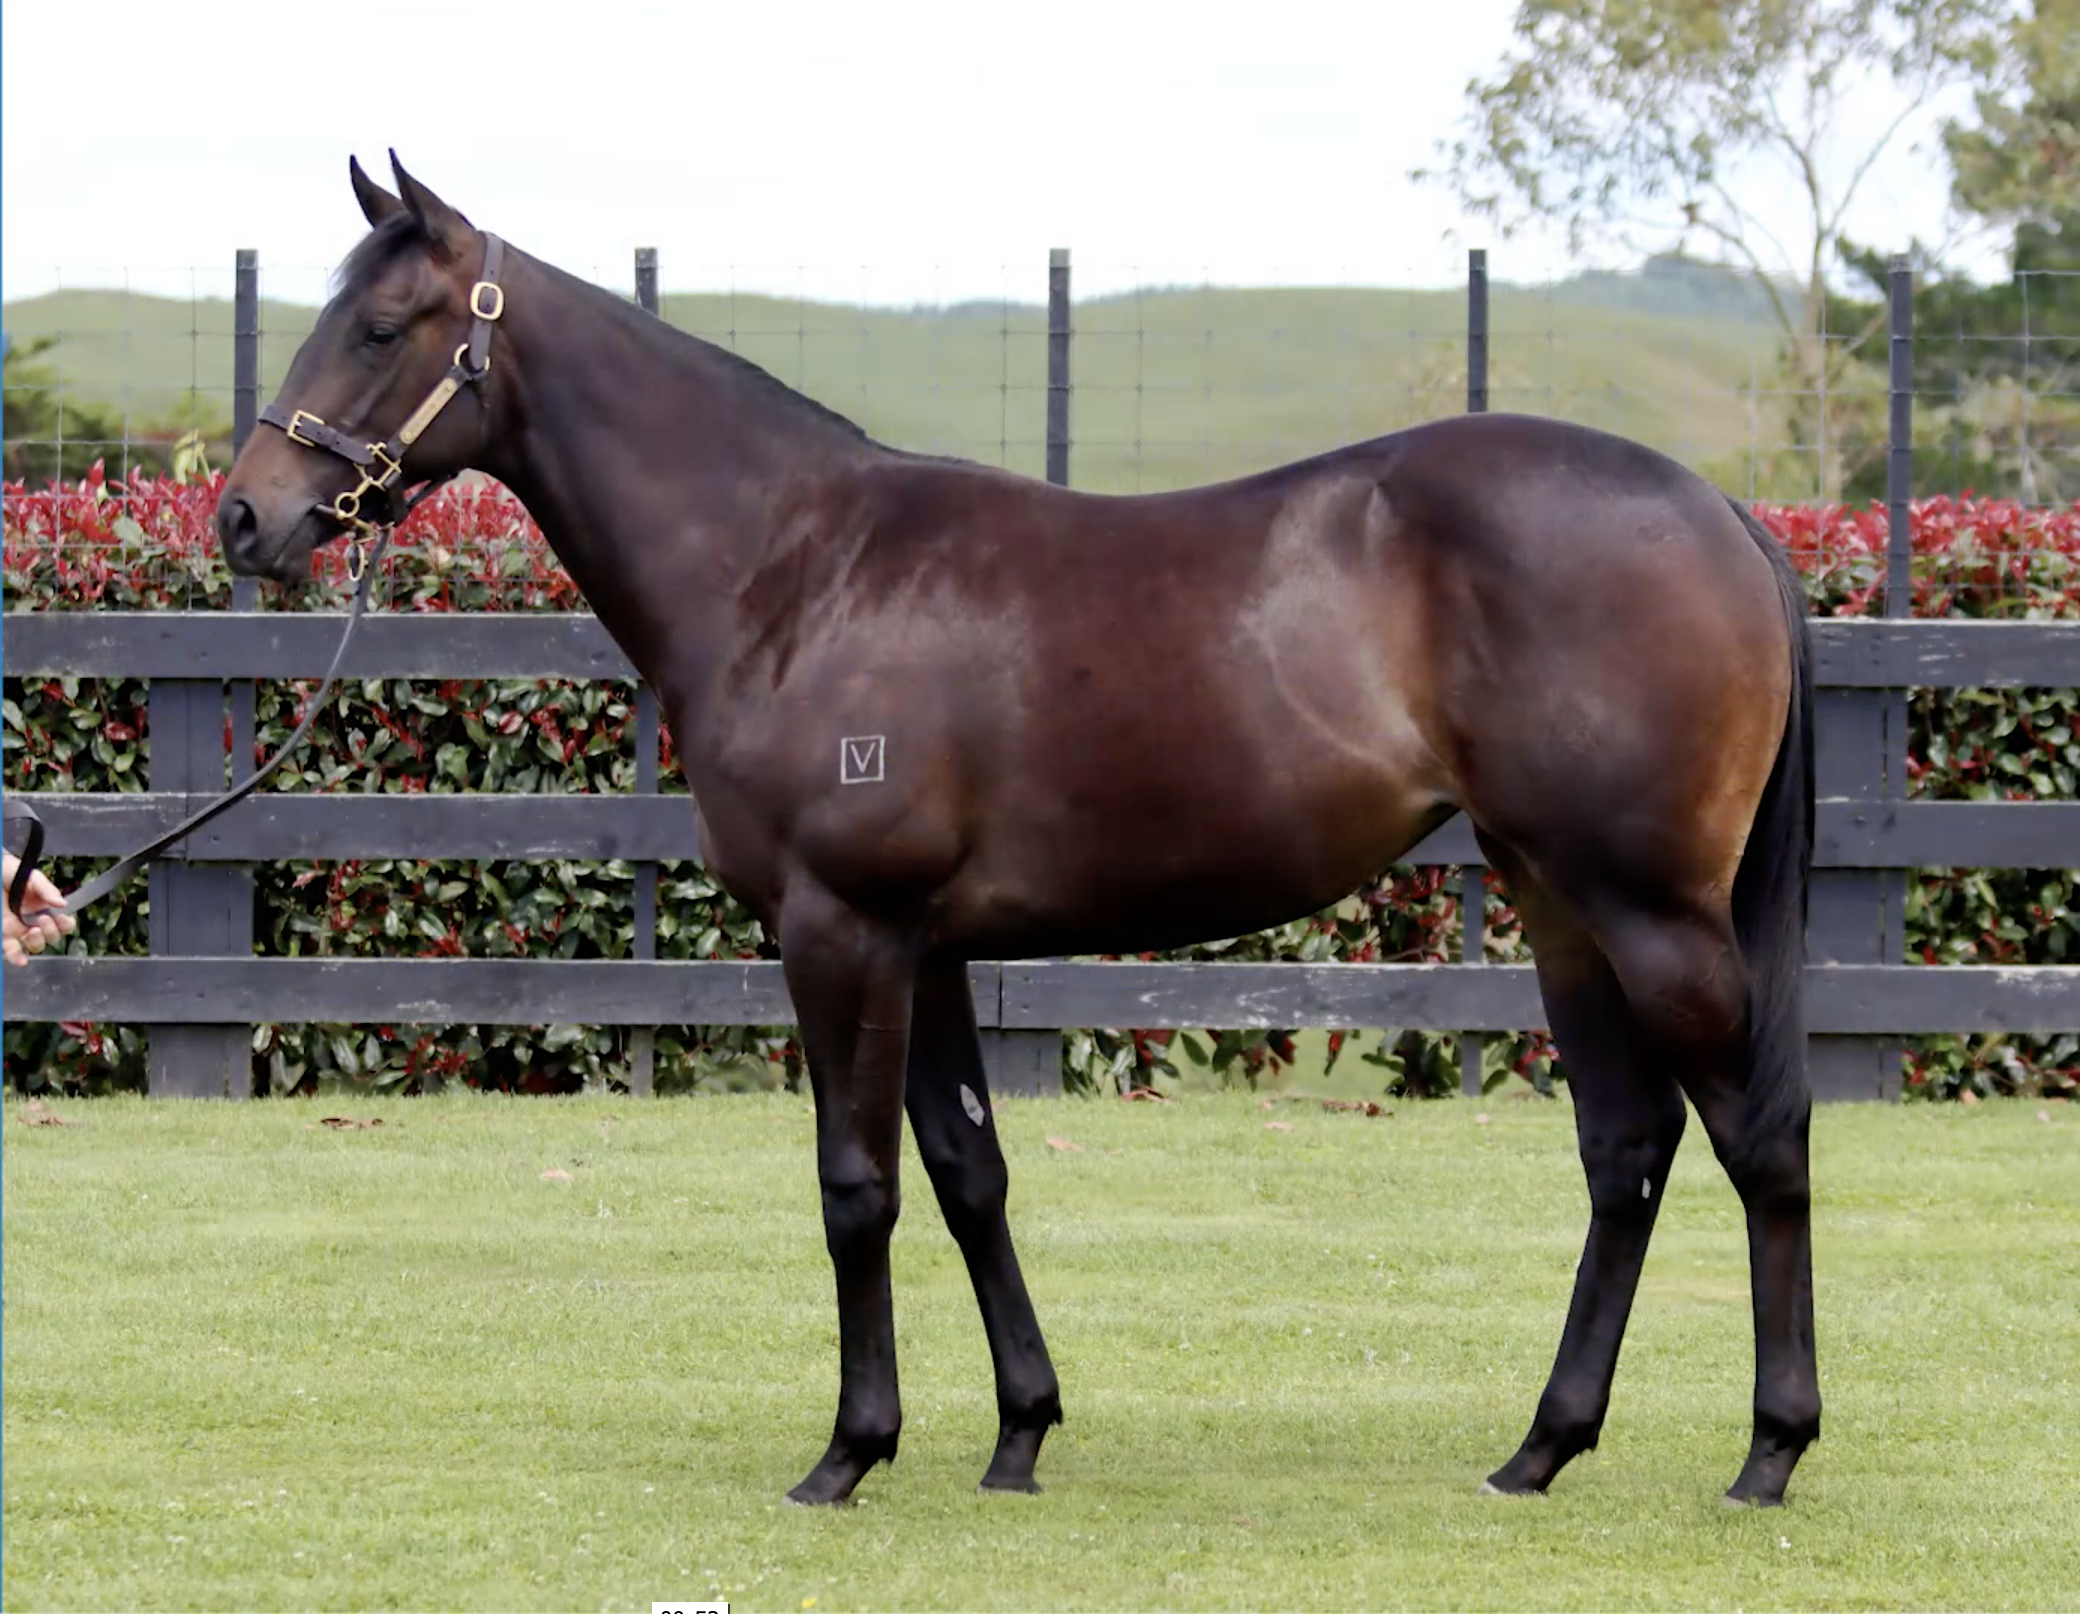 Vente de yearlings de Karaka :  les Almanzor font sensation